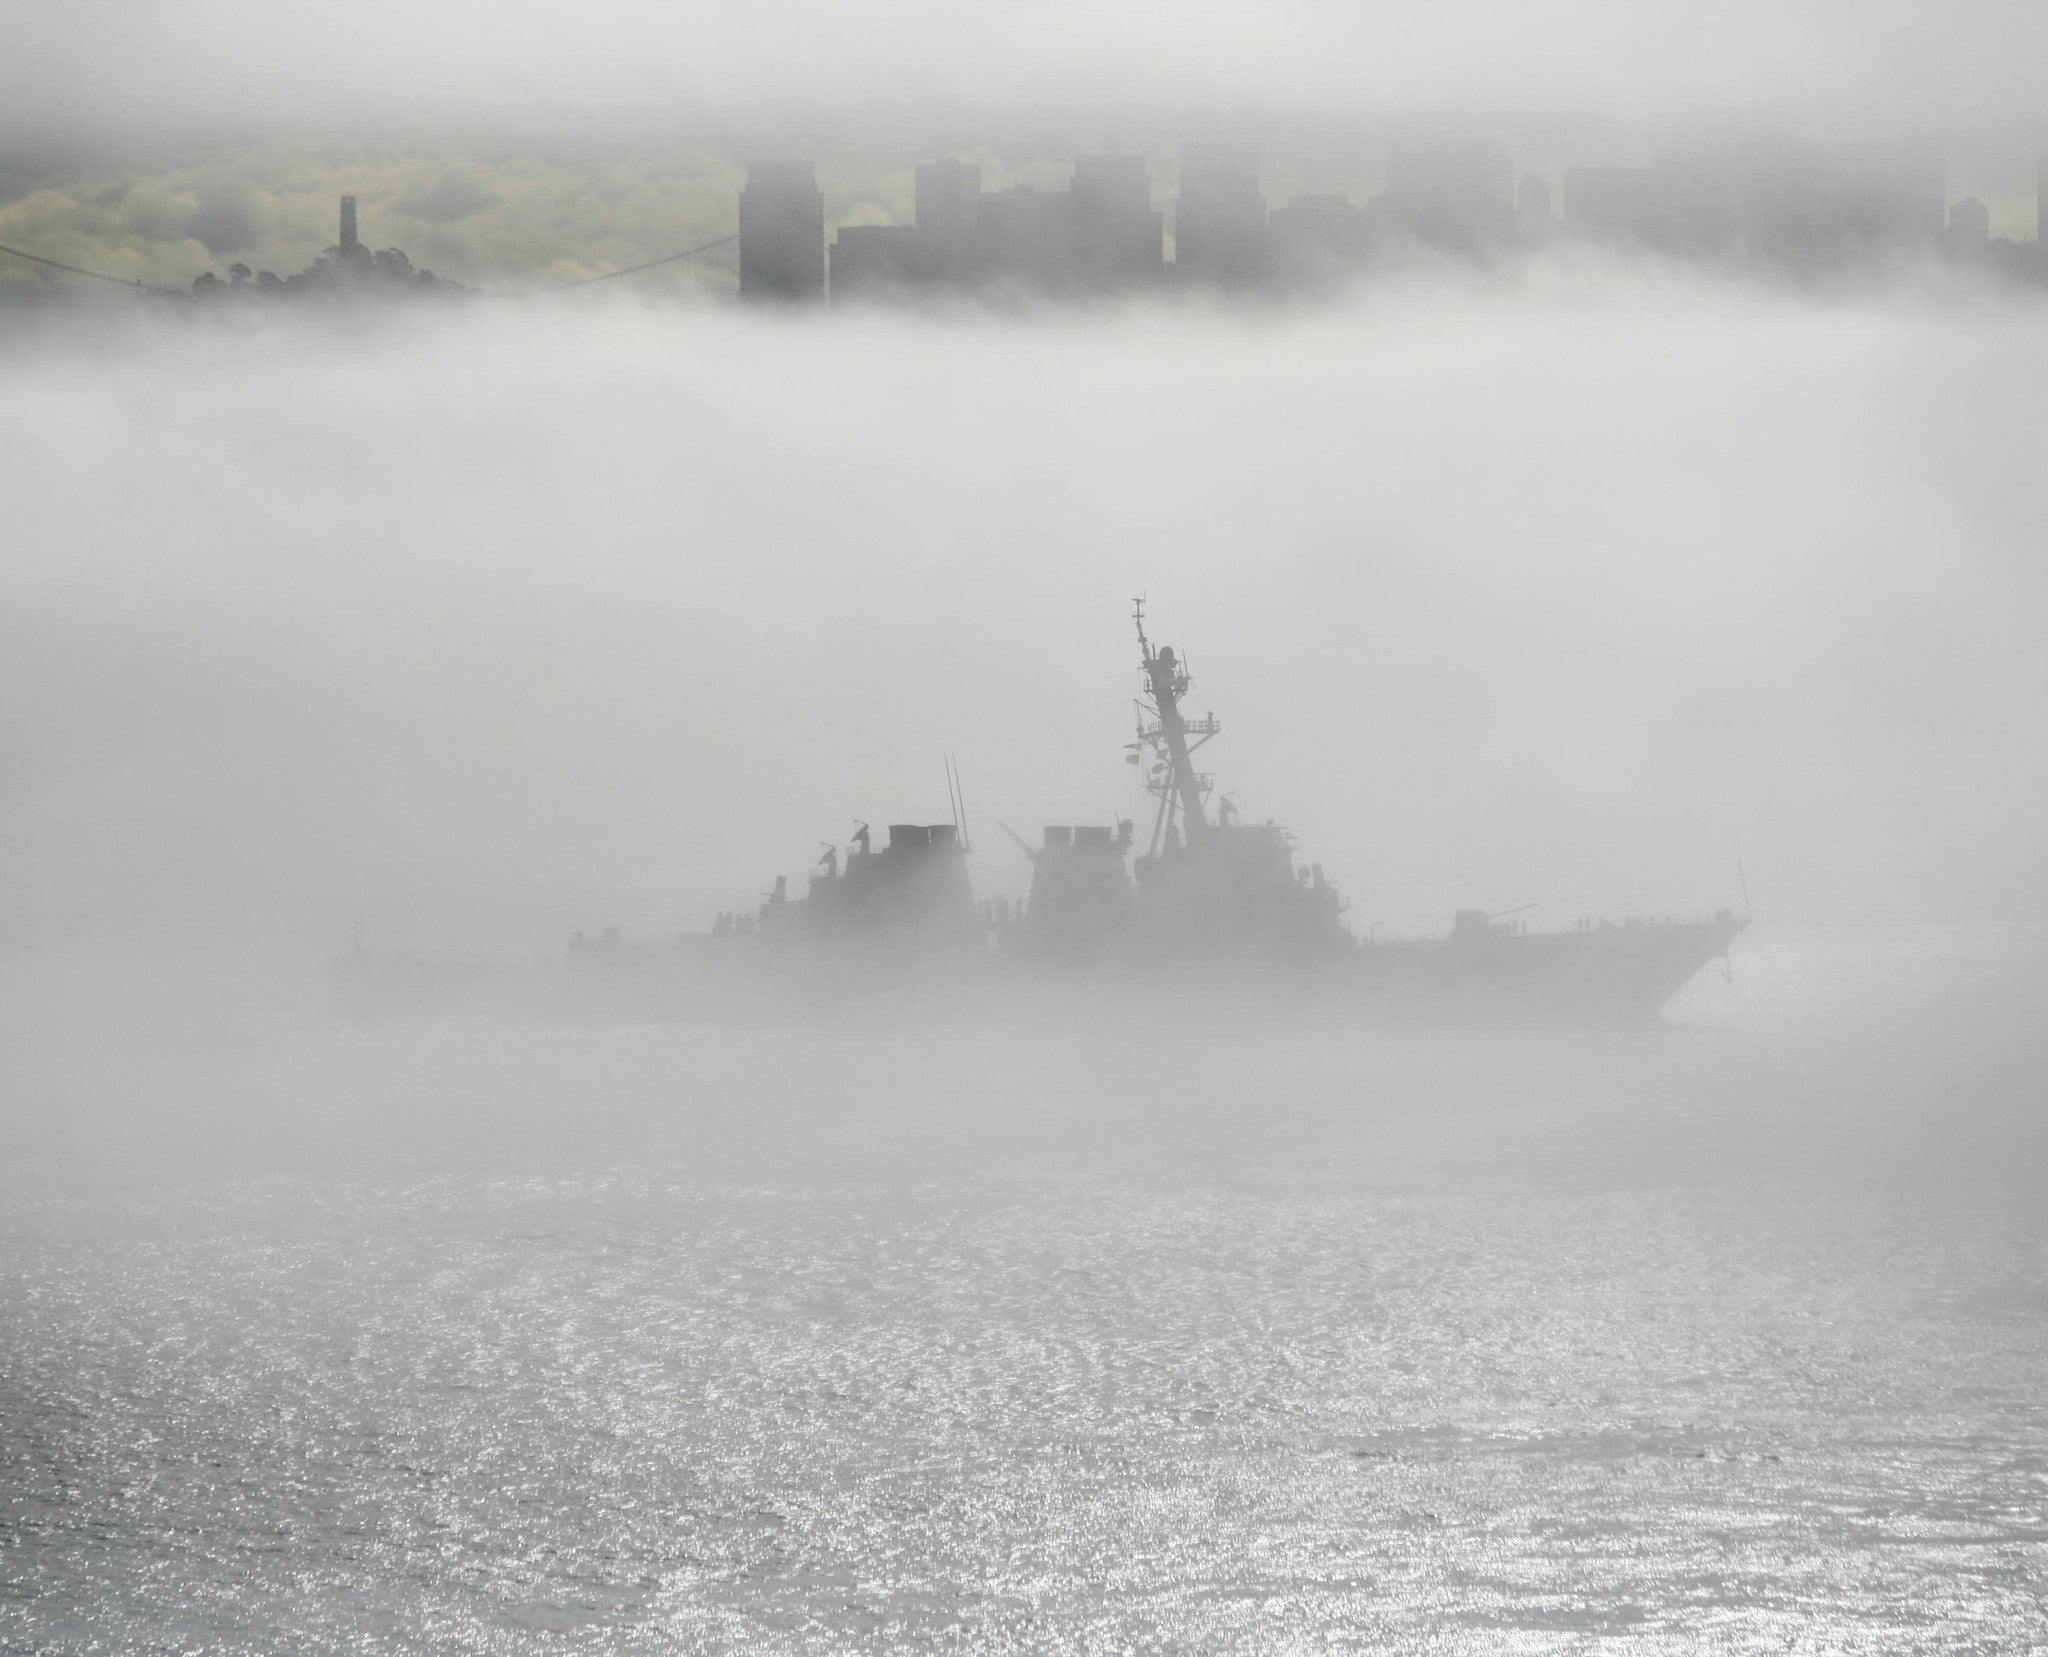 "USS Milius DDG-69 San Francisco October 11, 2011 - 8 x 10"" Photograph"